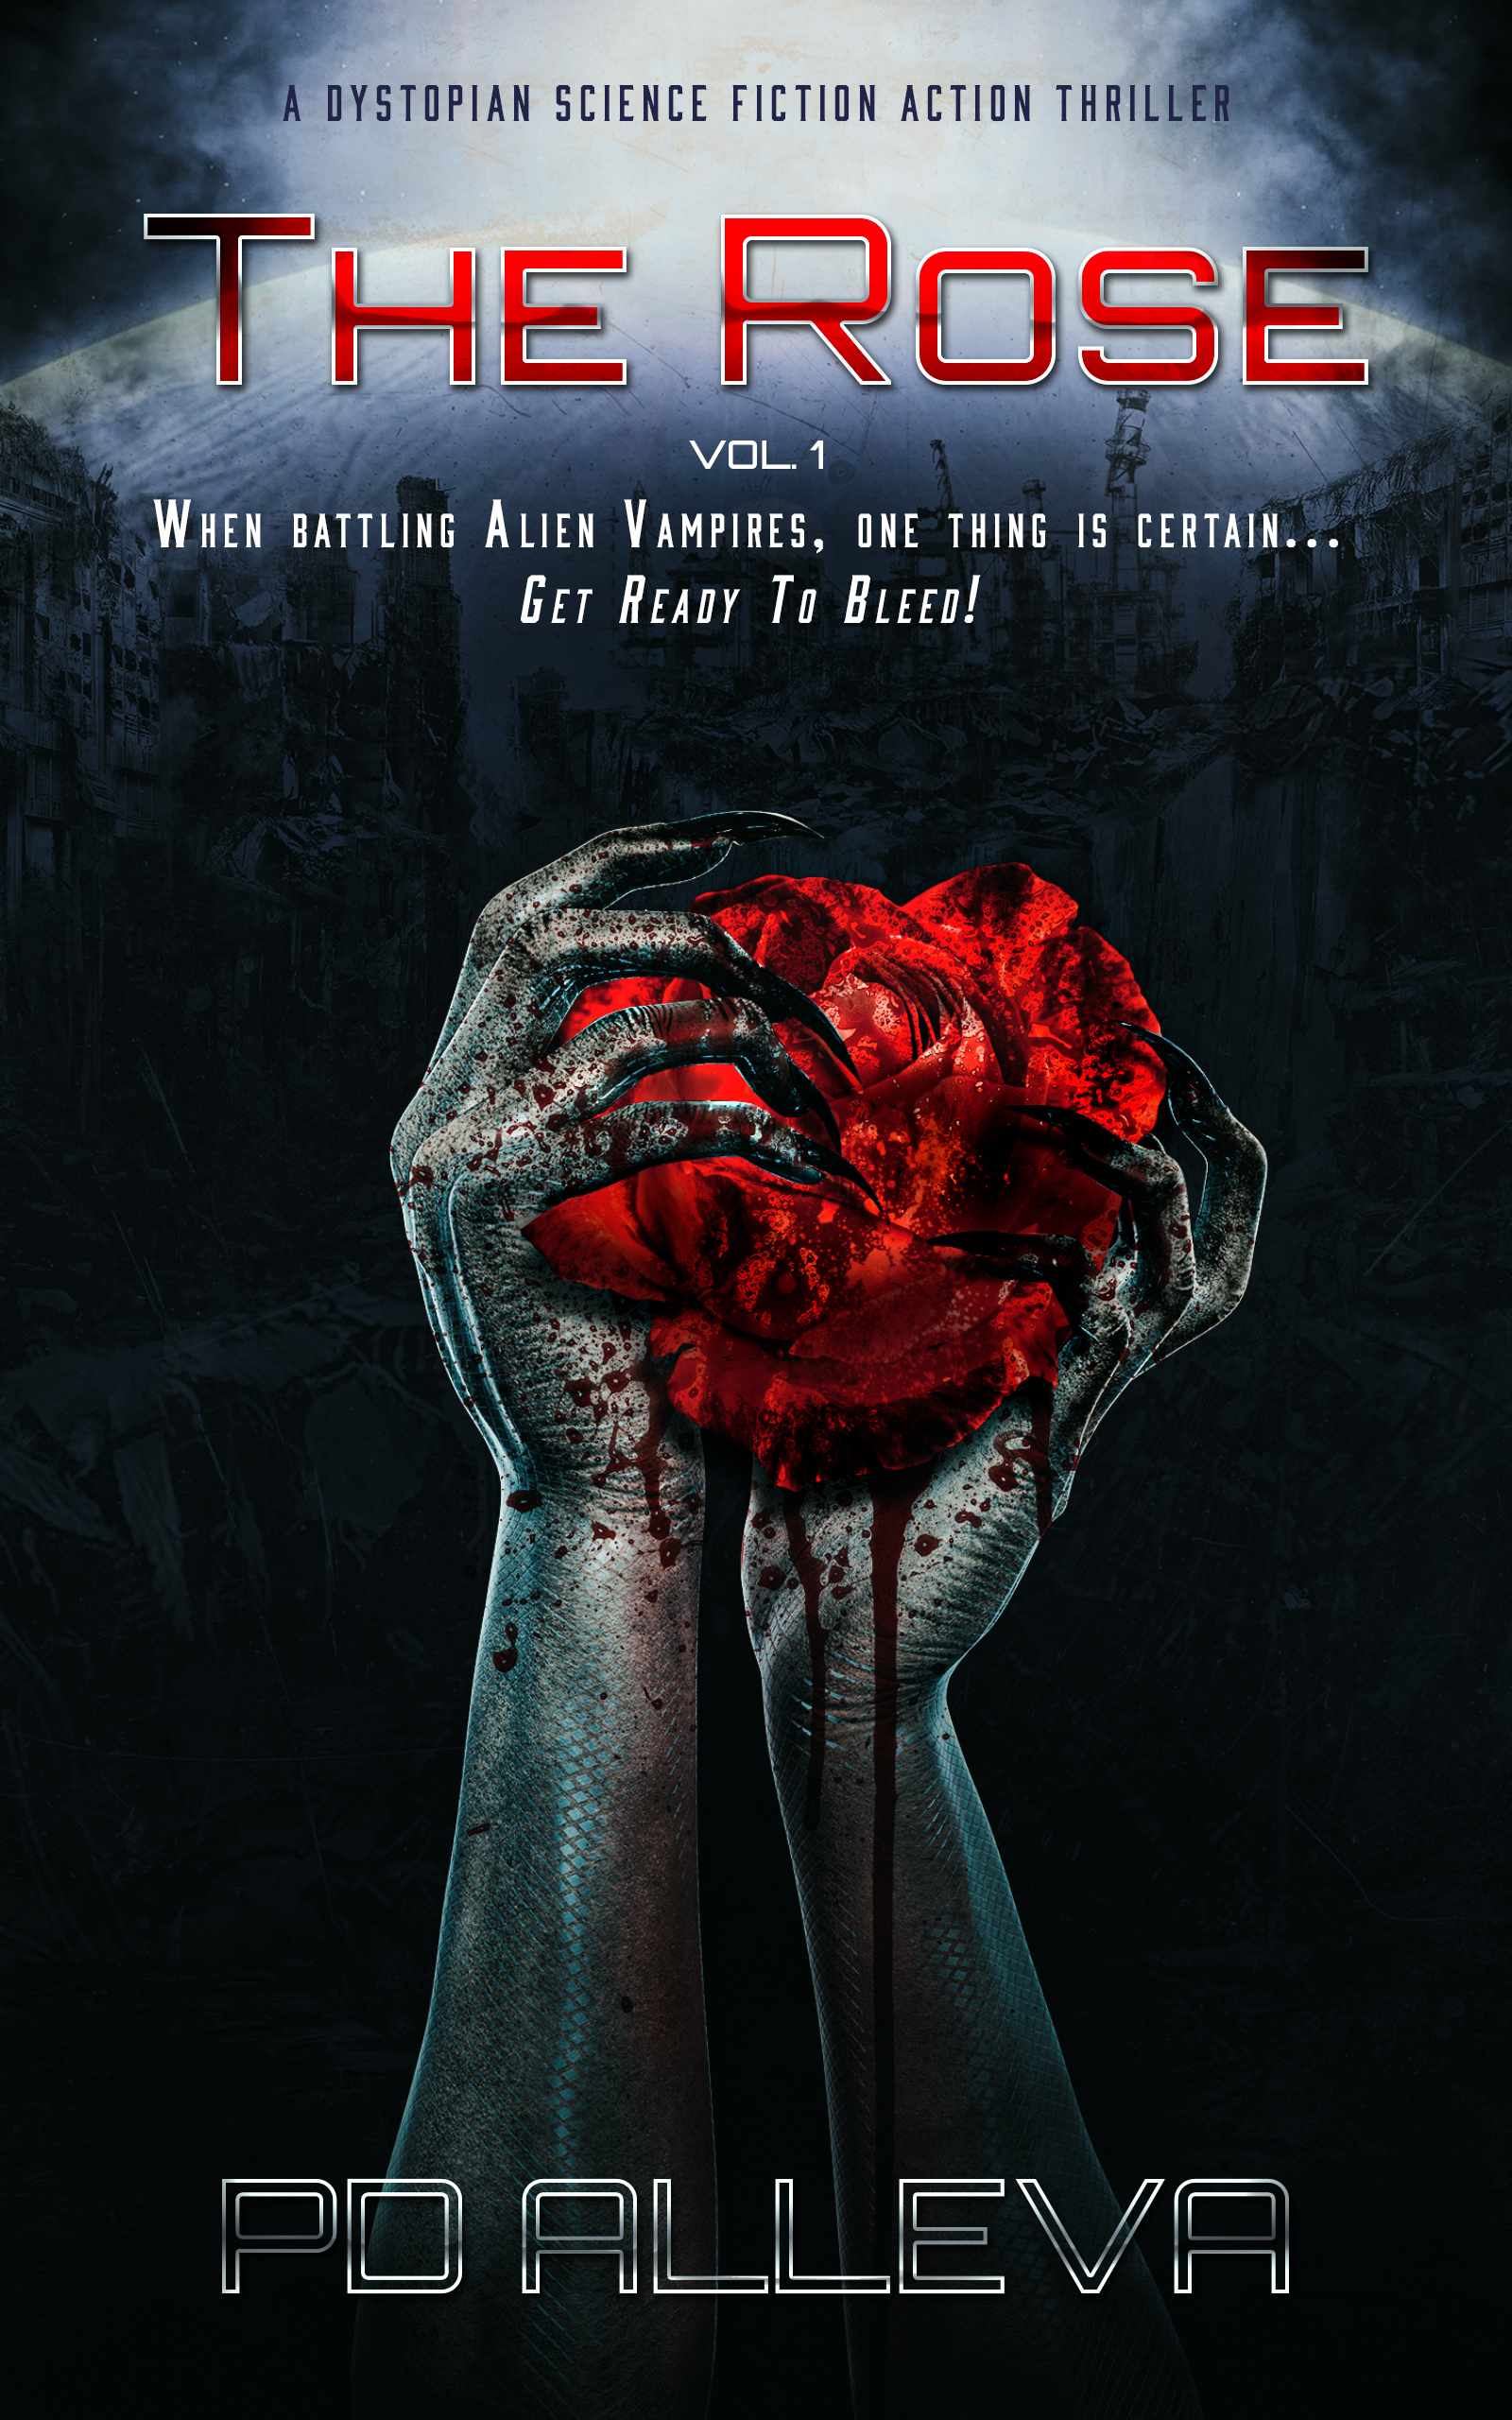 The Rose (Vol. 1) A Dystopian Science Fiction Thriller